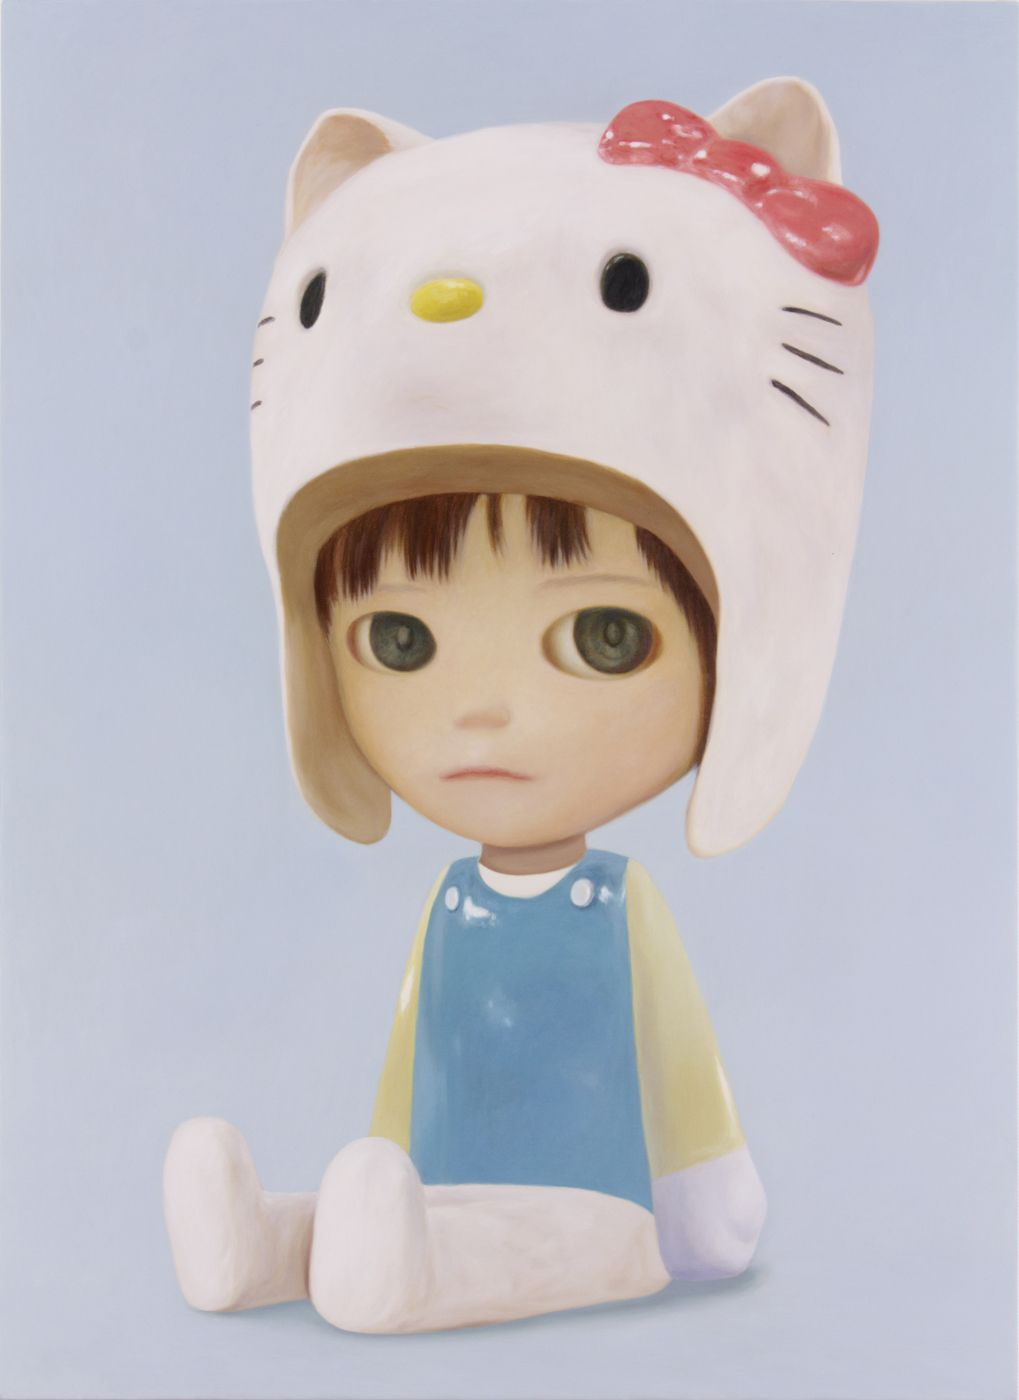 Over 100 artists mark Hello Kitty's 45th anniversary in a landmark new show